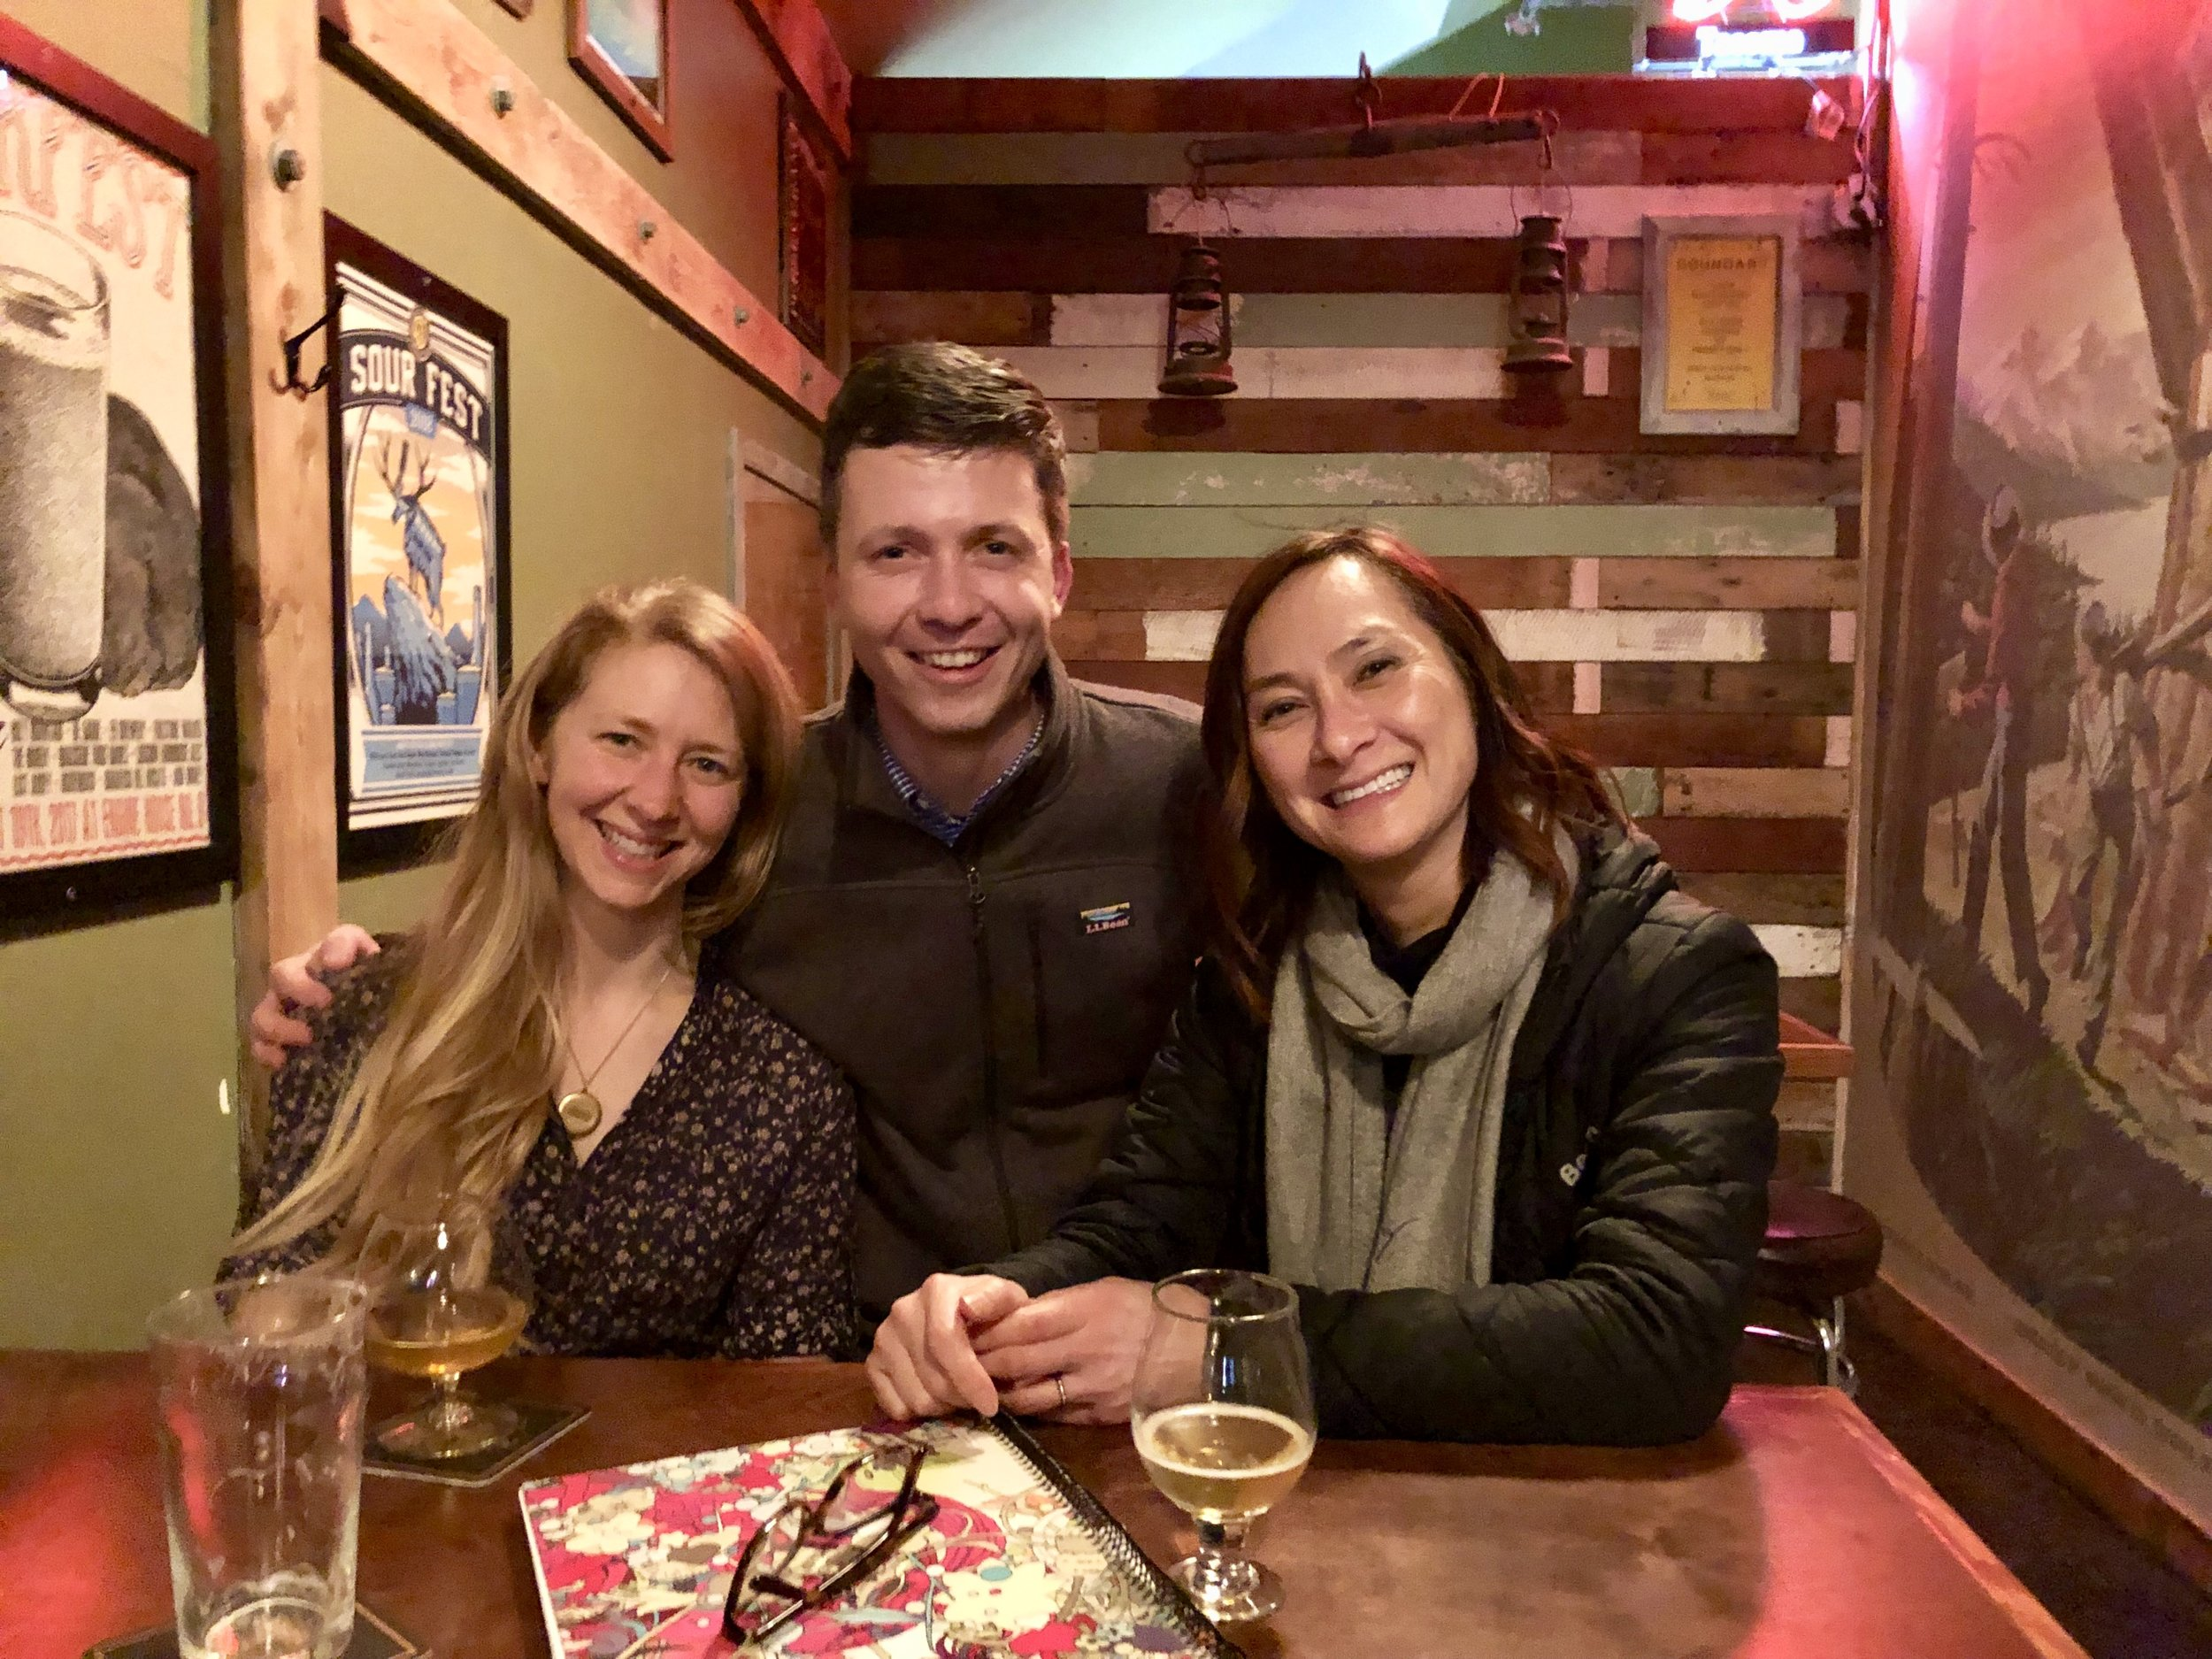 Our first meeting at  Peaks & Pints  where the Duggan, Brooks & Books Project got started. (Left to right: Gretchen Duggan, Michael Duggan, Dr. Jamie Brooks)